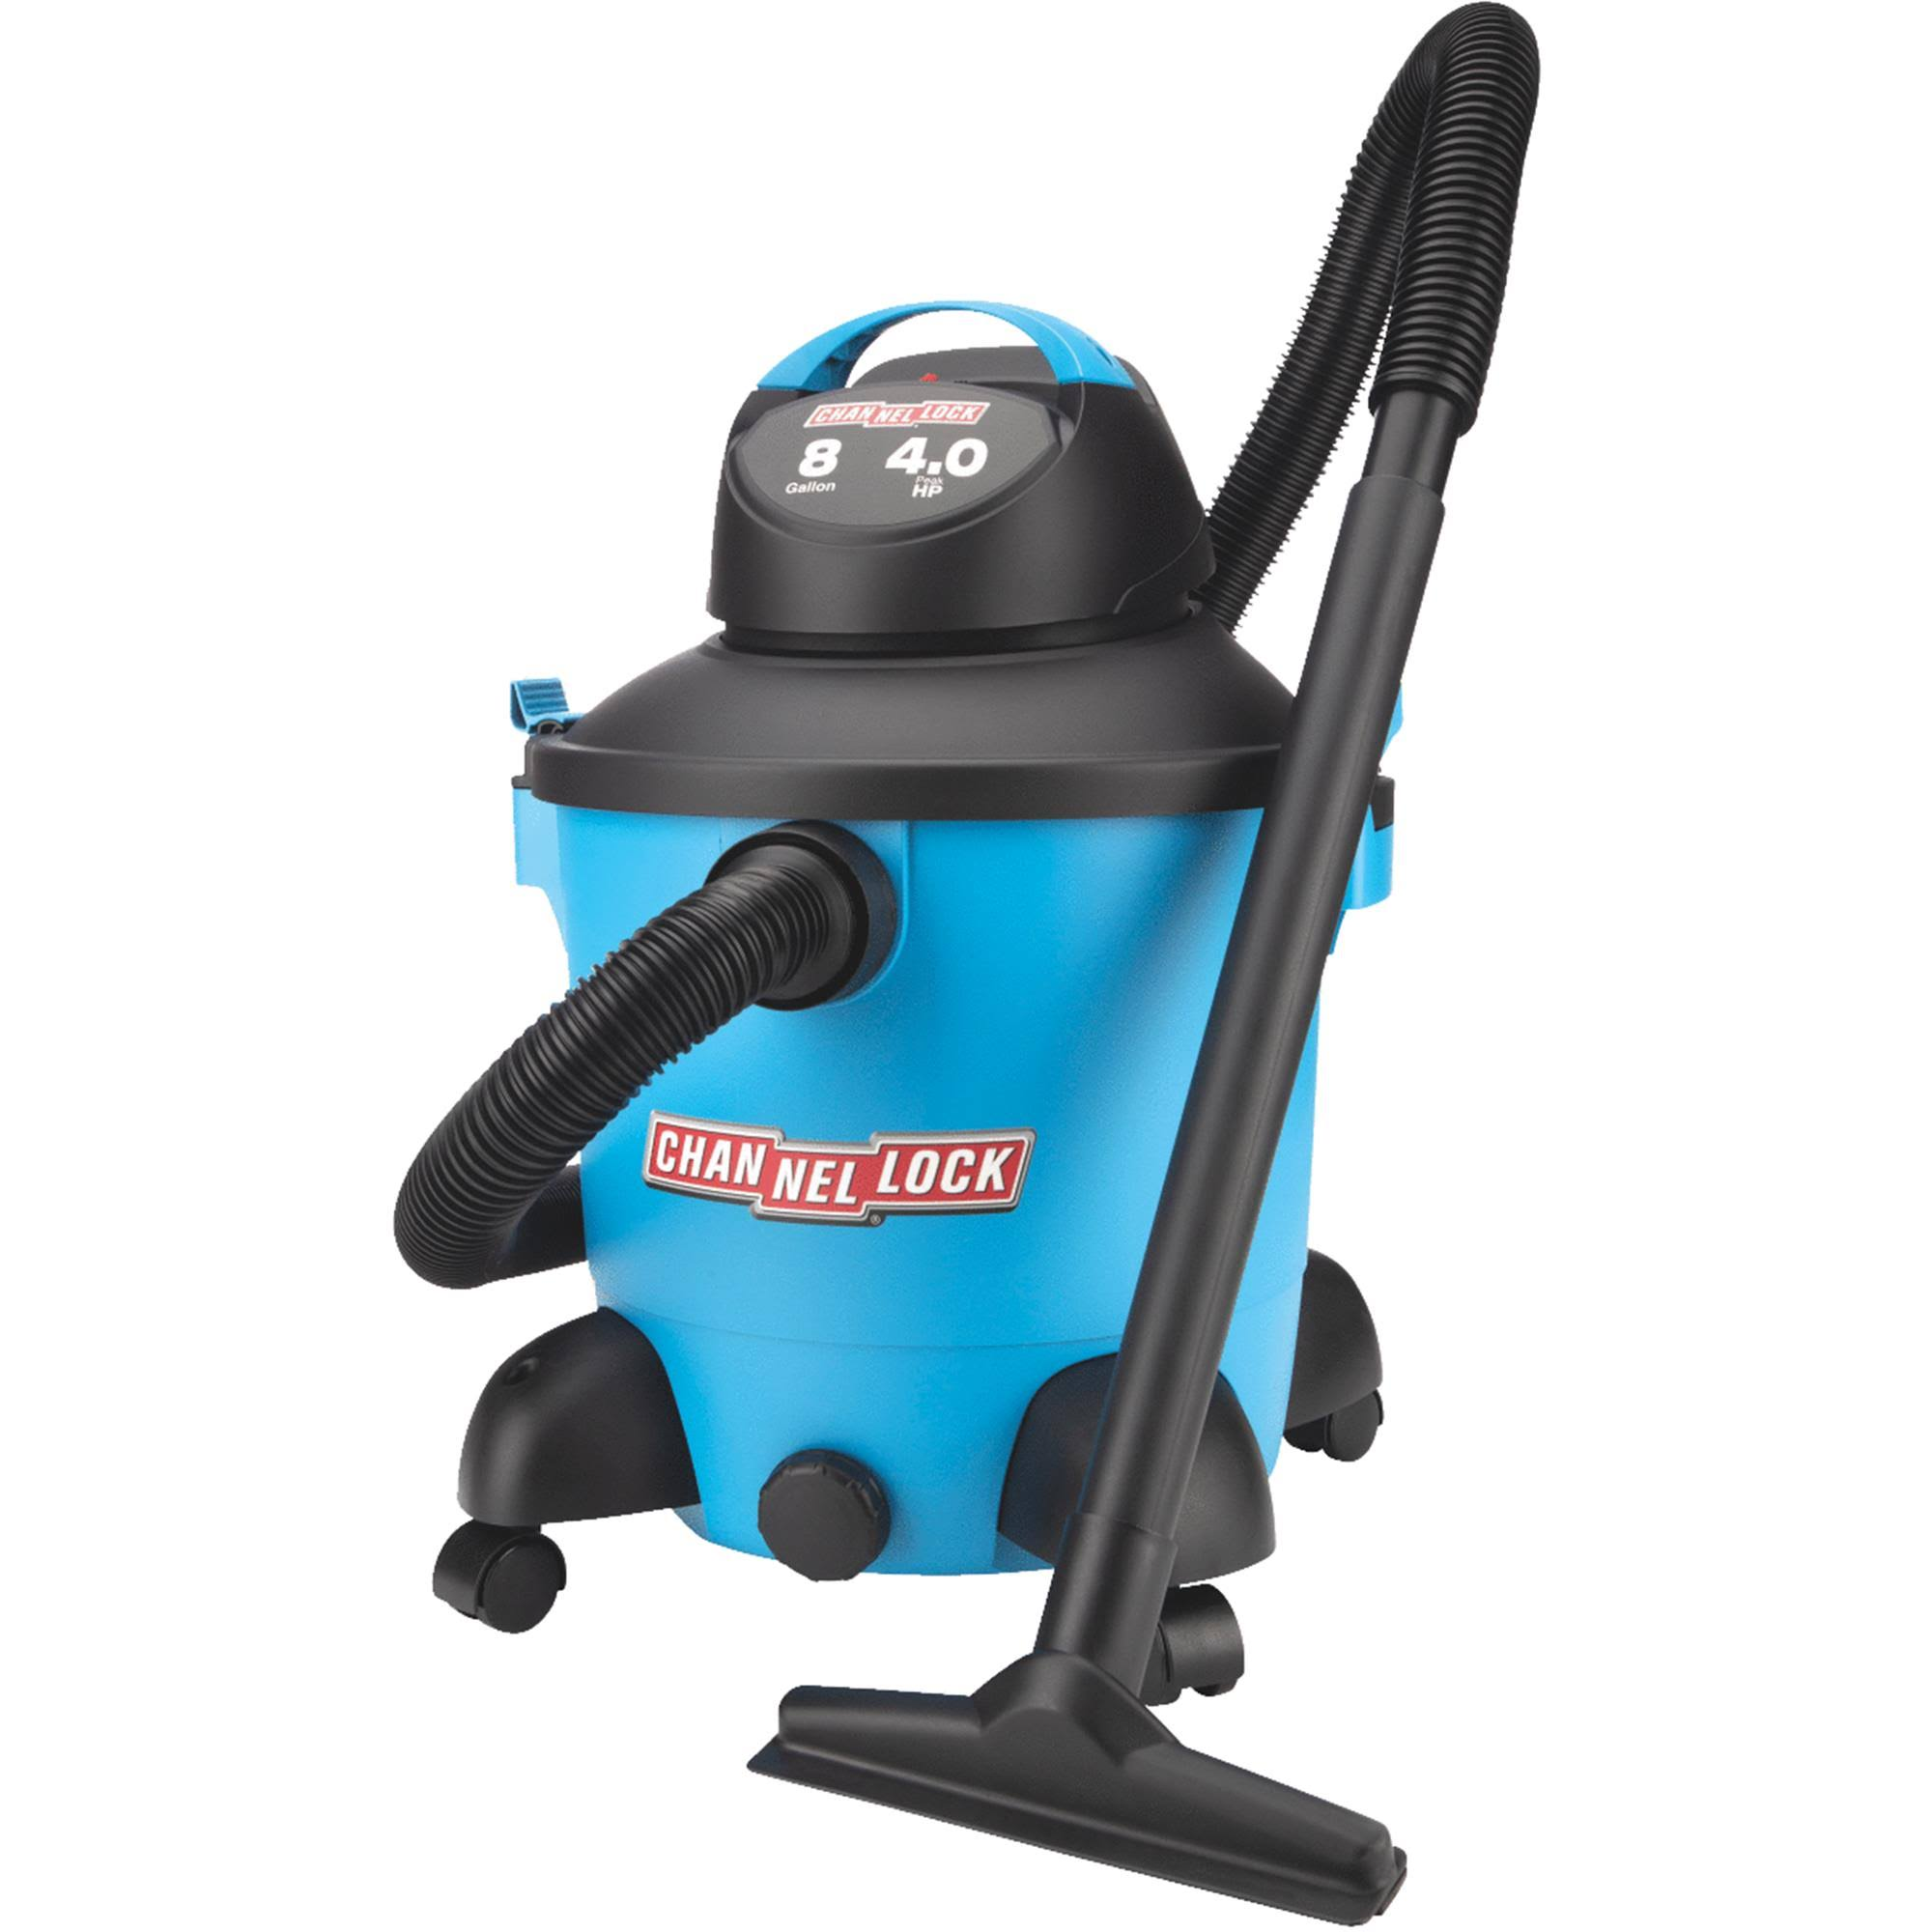 Channellock 8 gal. 4.0 HP Wet/Dry Vacuum 5902800